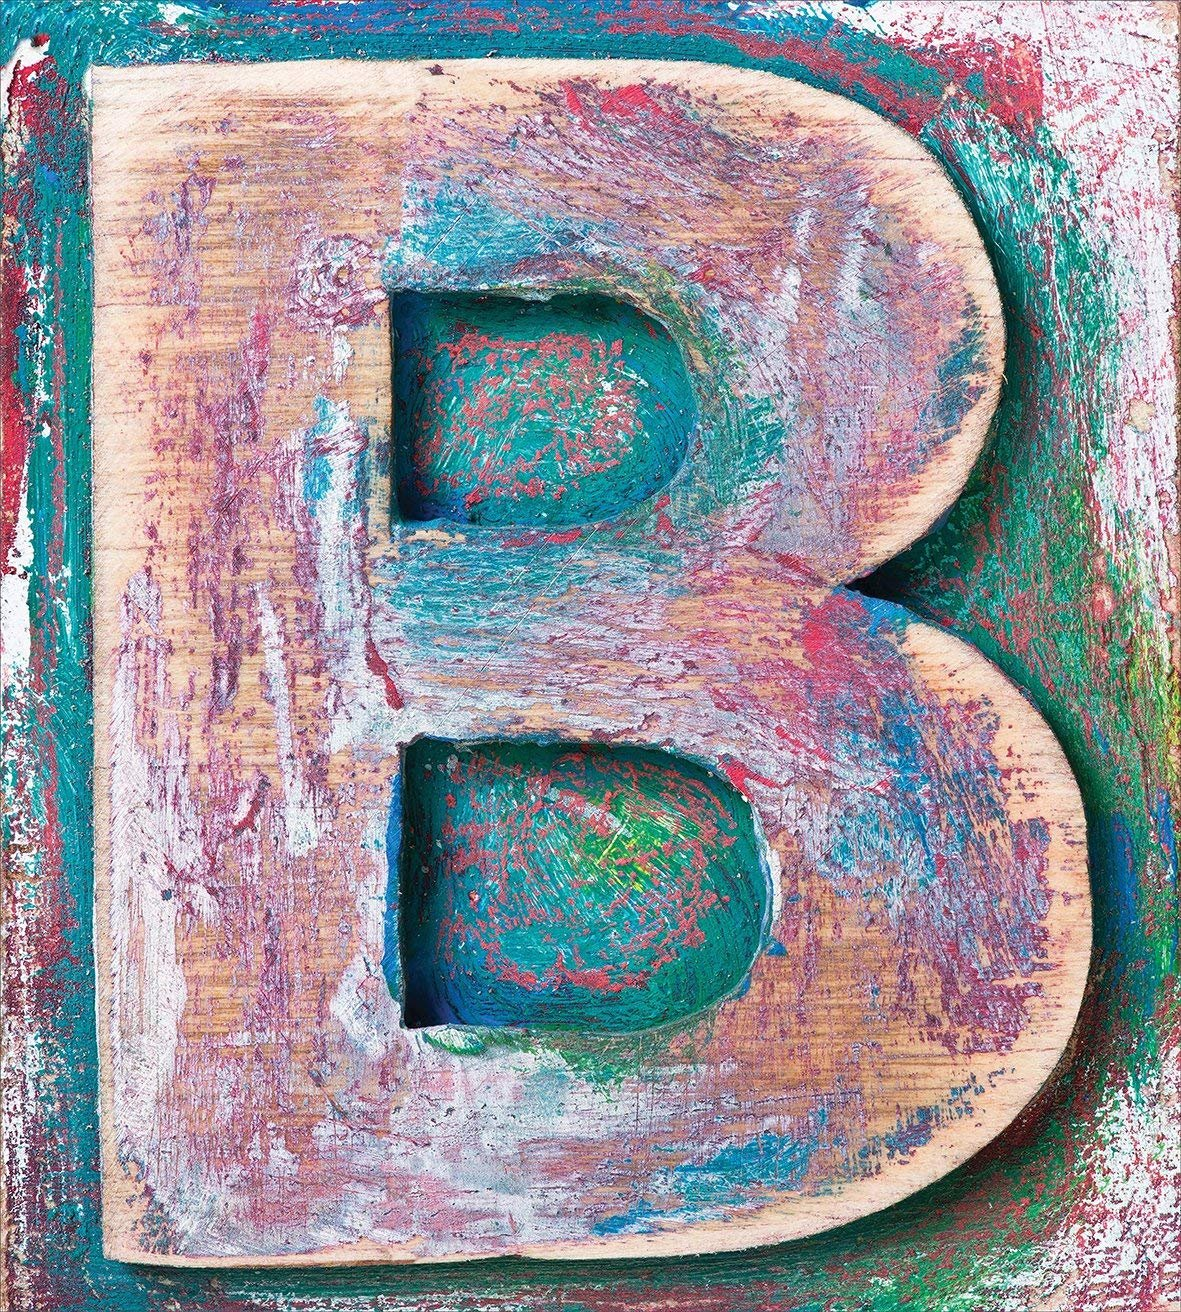 Letter B Twin Duvet Cover Sets 4 Piece Bedding Set Bedspread with 2 Pillow Sham, Flat Sheet for Adult/Kids/Teens, Old Fashioned Print Method Wood Block Alphabet ABC Type Worn Capital B by Family Decor (Image #2)